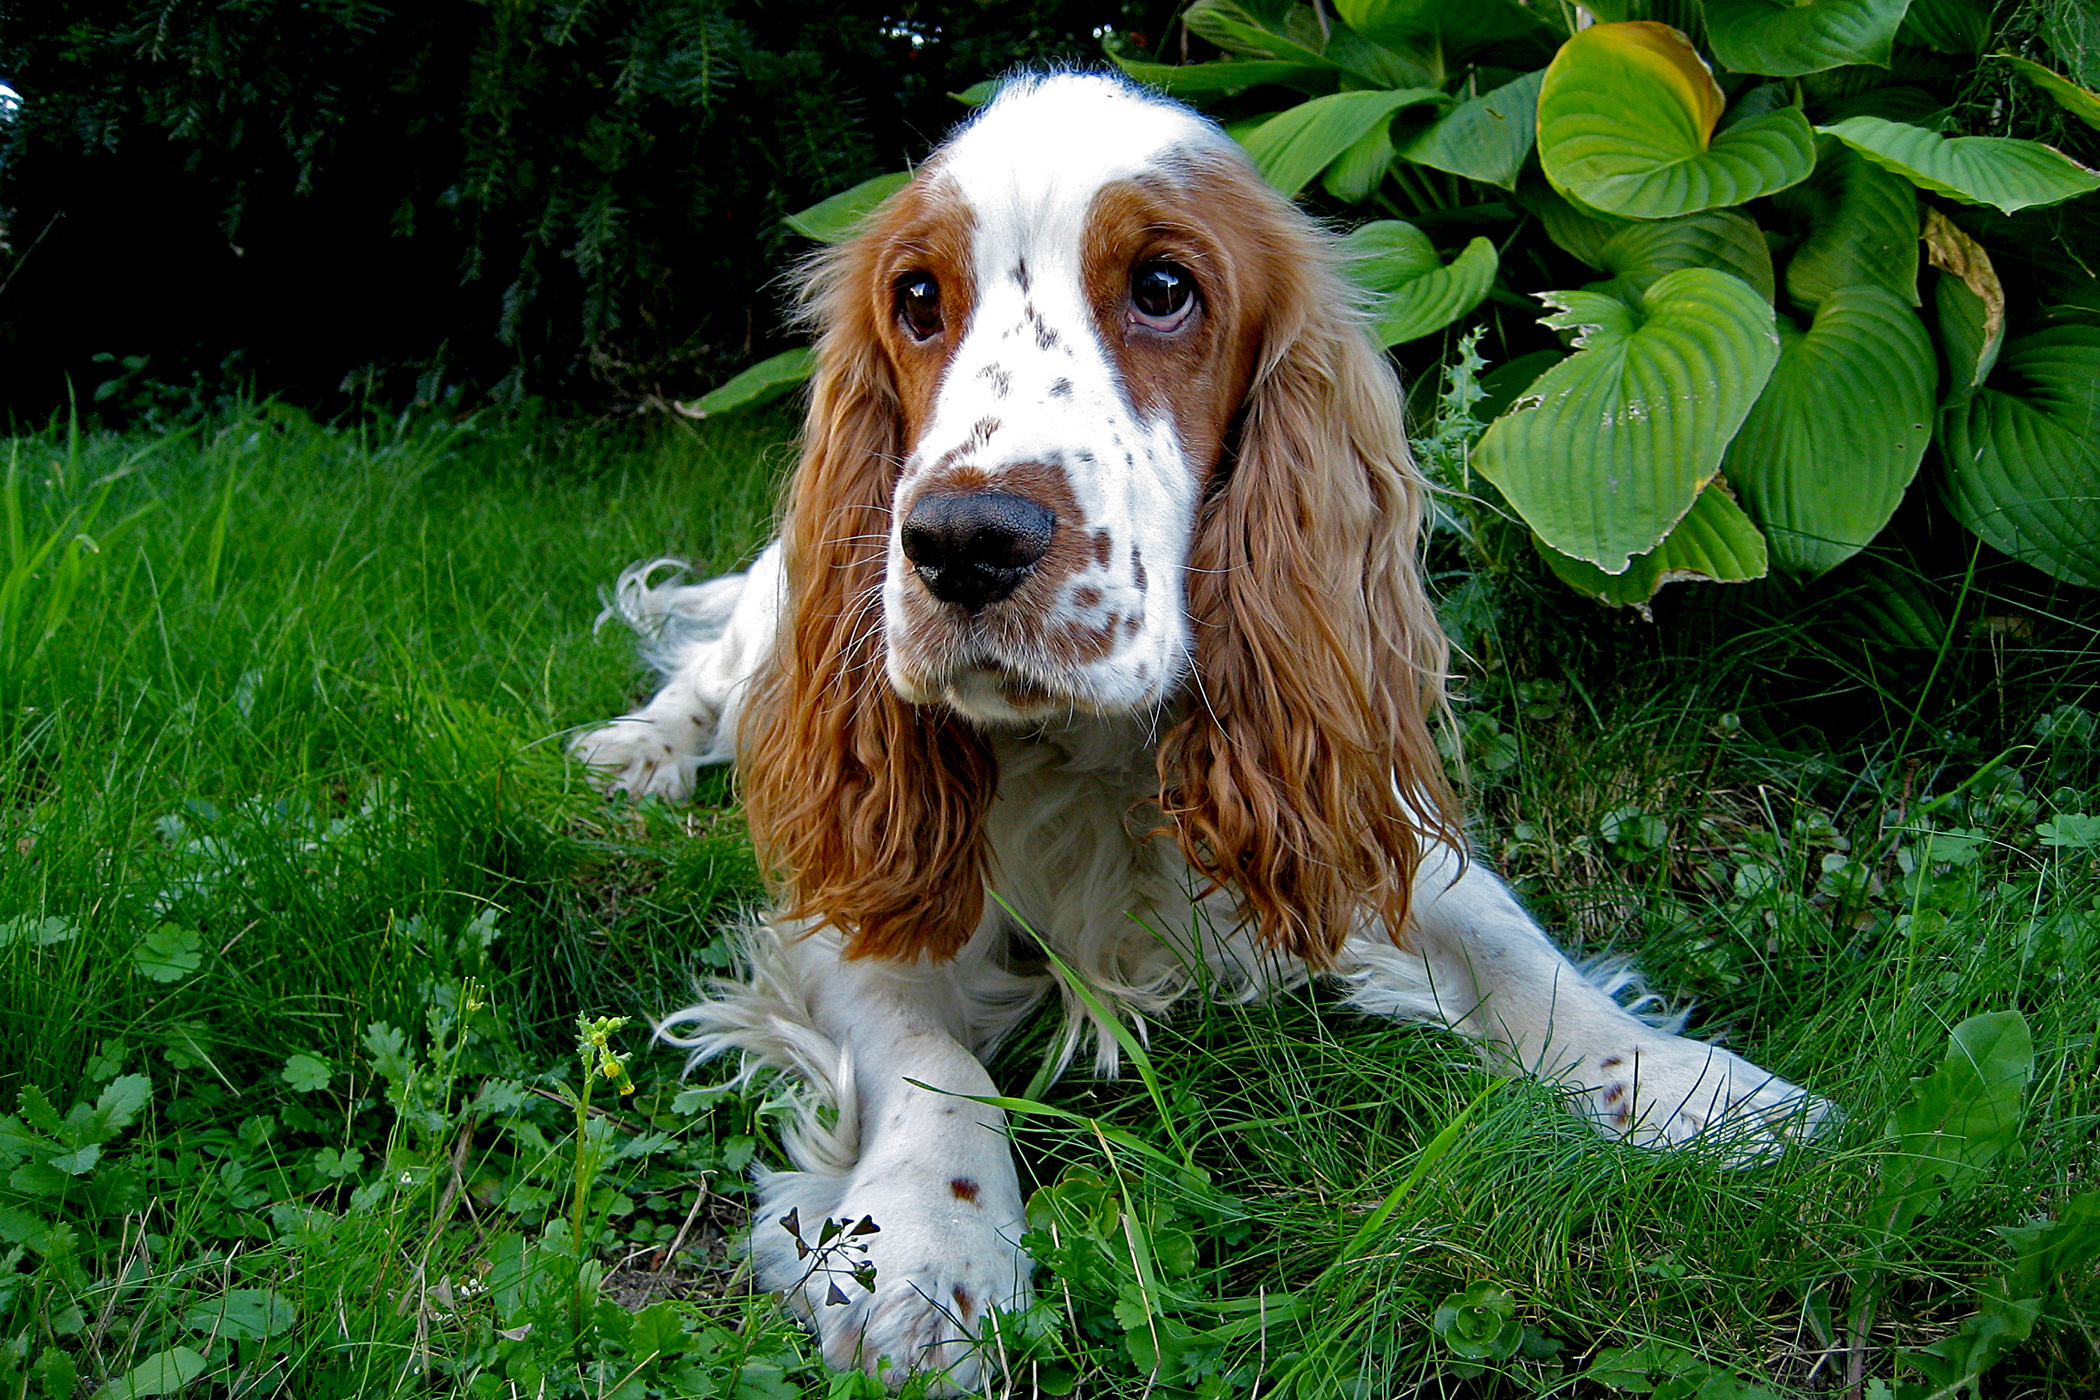 Partial Penile Amputation in Dogs